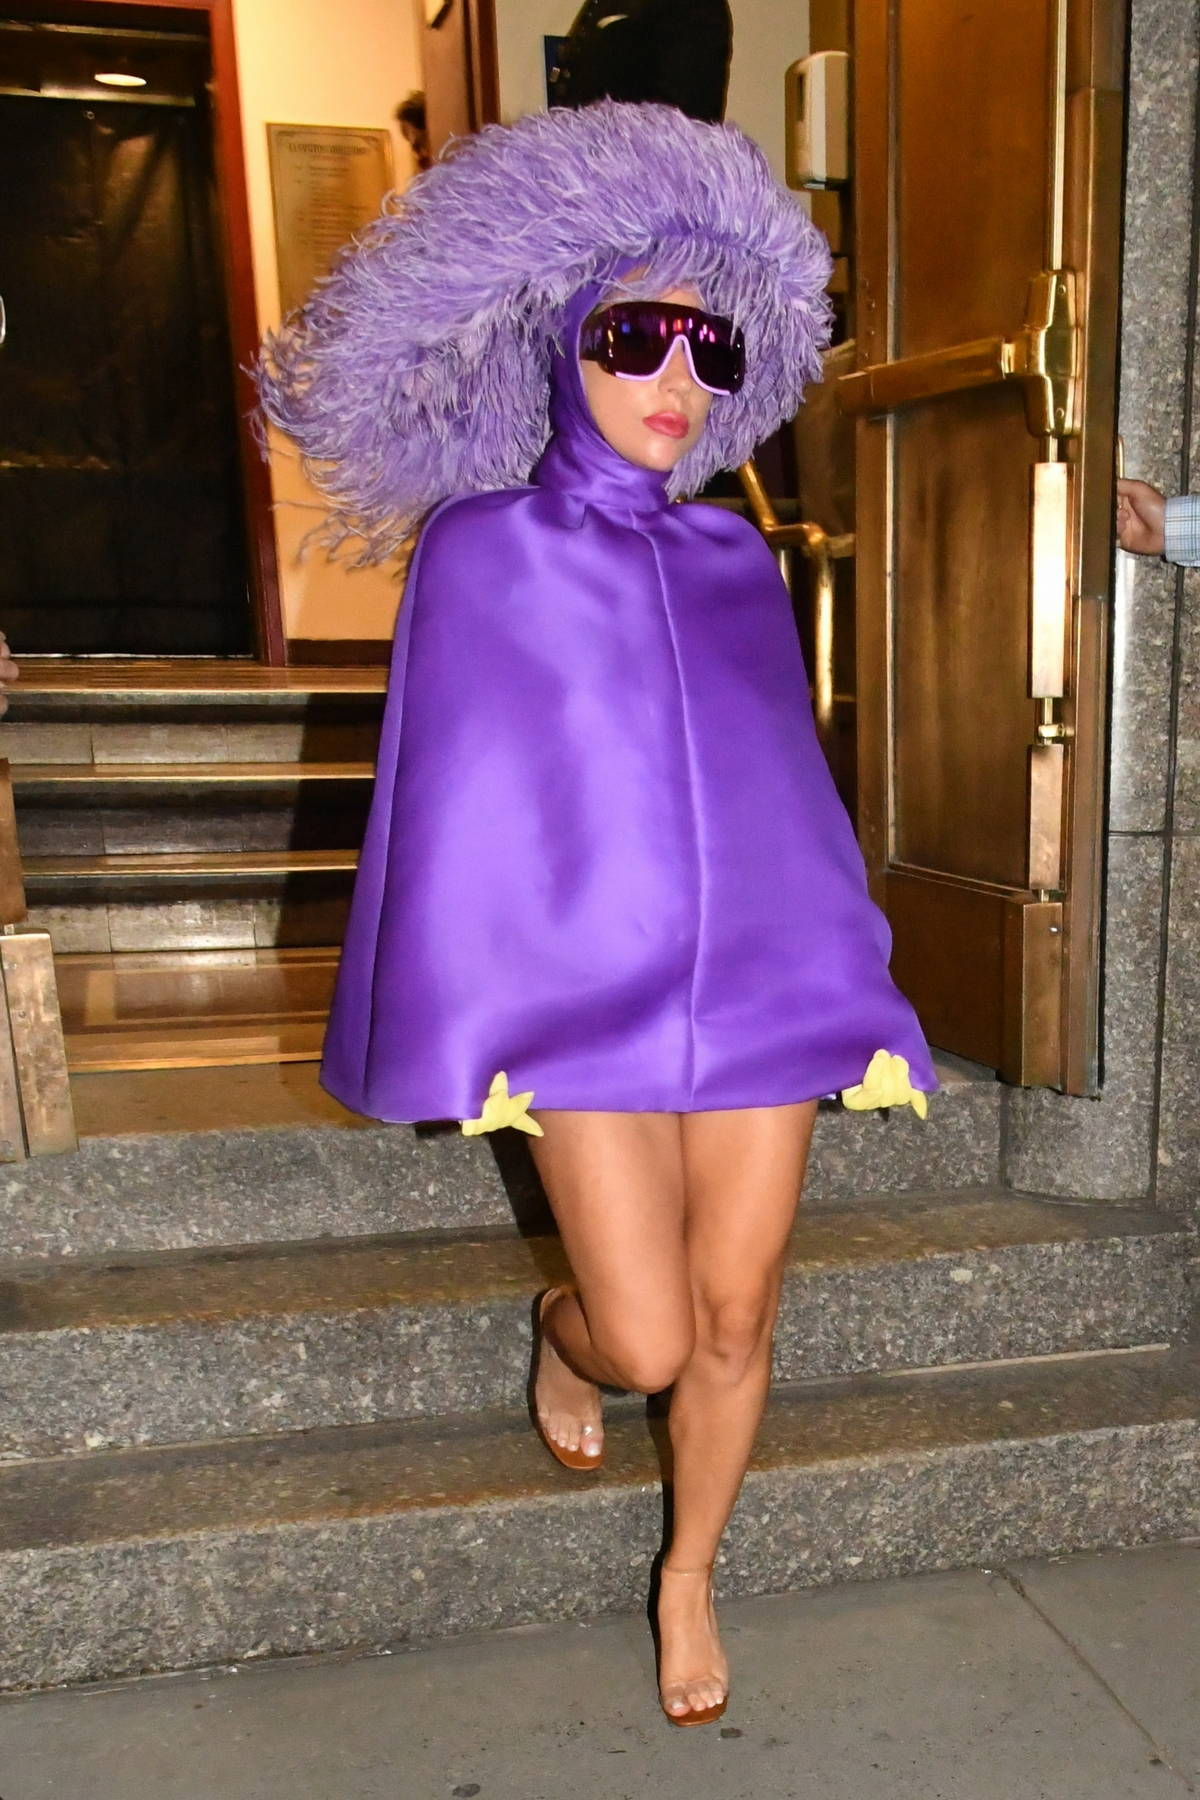 Lady Gaga showcases her unique style in all purple ensemble as she leaves Radio City Music Hall in New York City